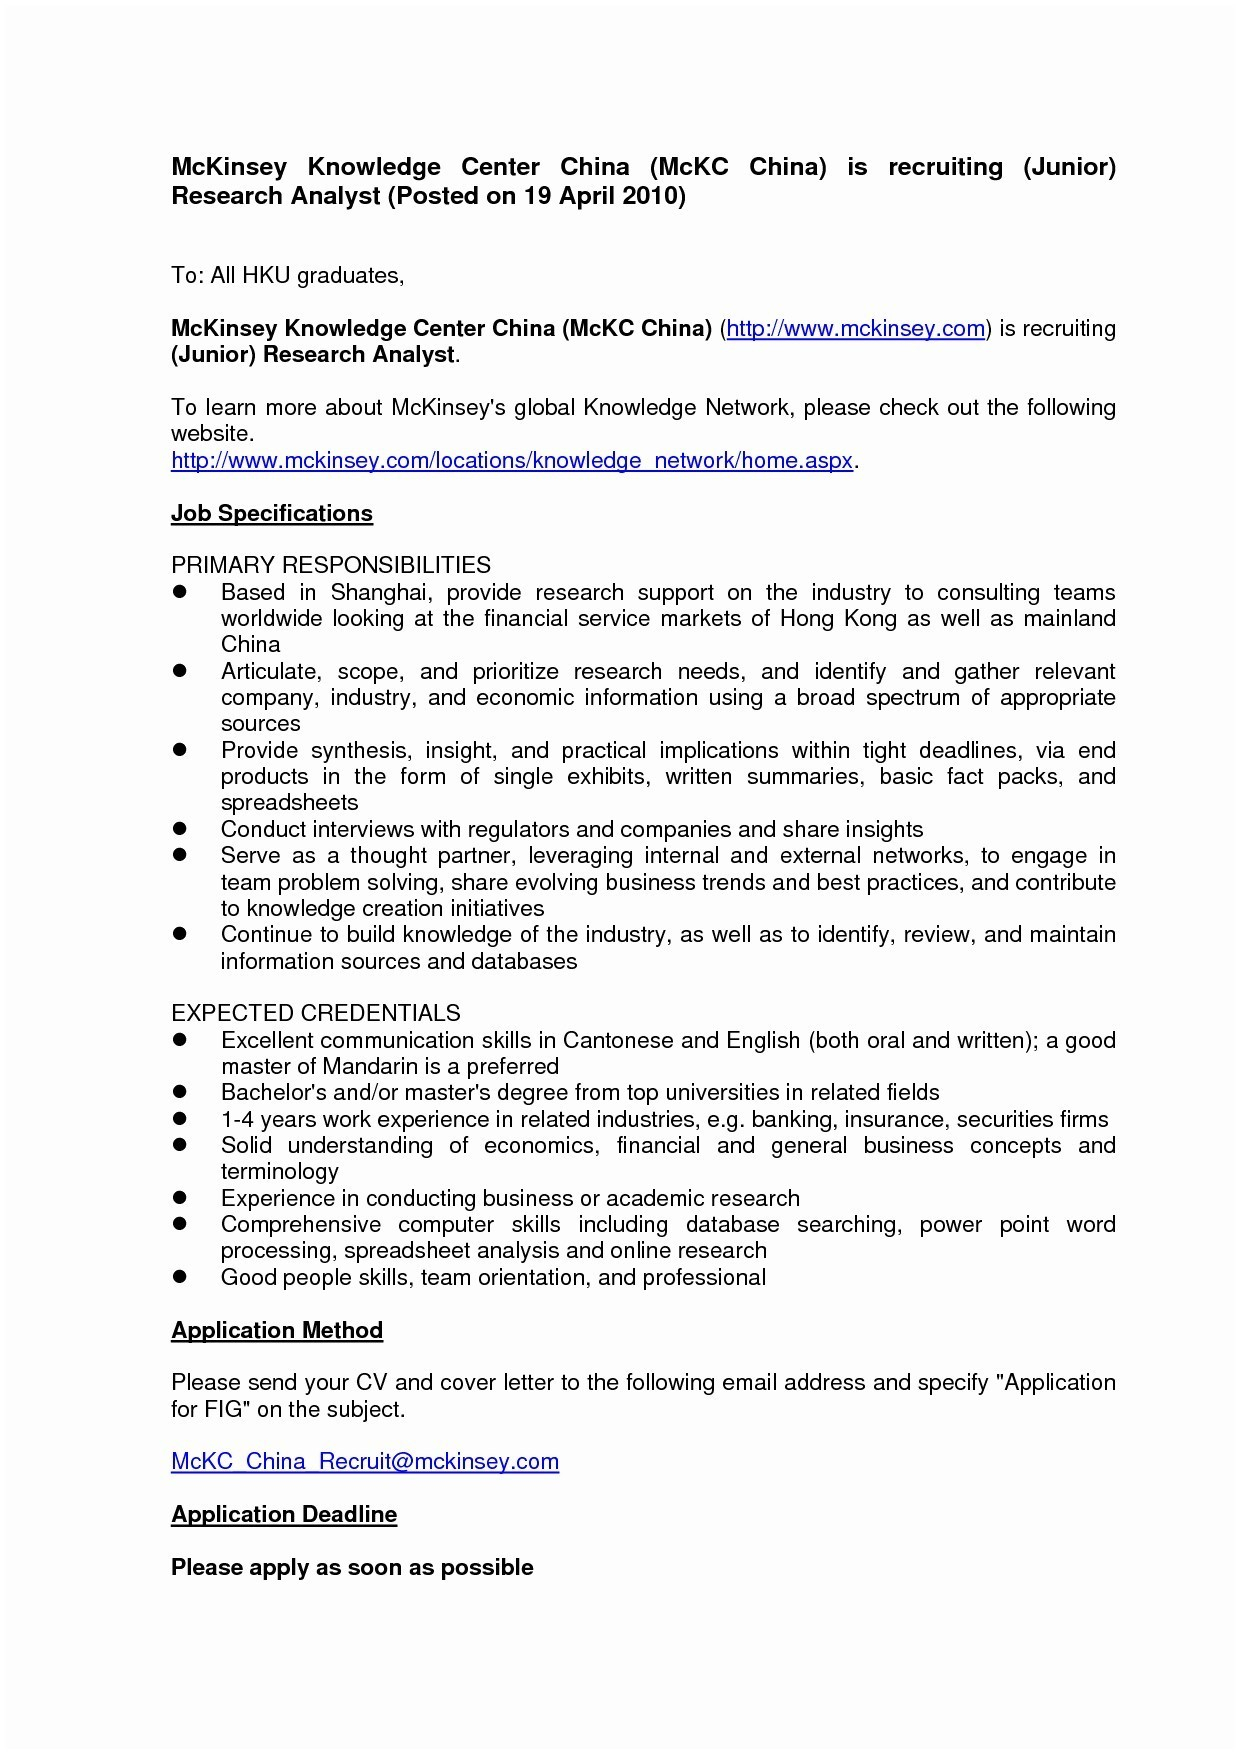 Simple Resume Cover Letter Template - Simple Resume Cover Letter Template Roddyschrock